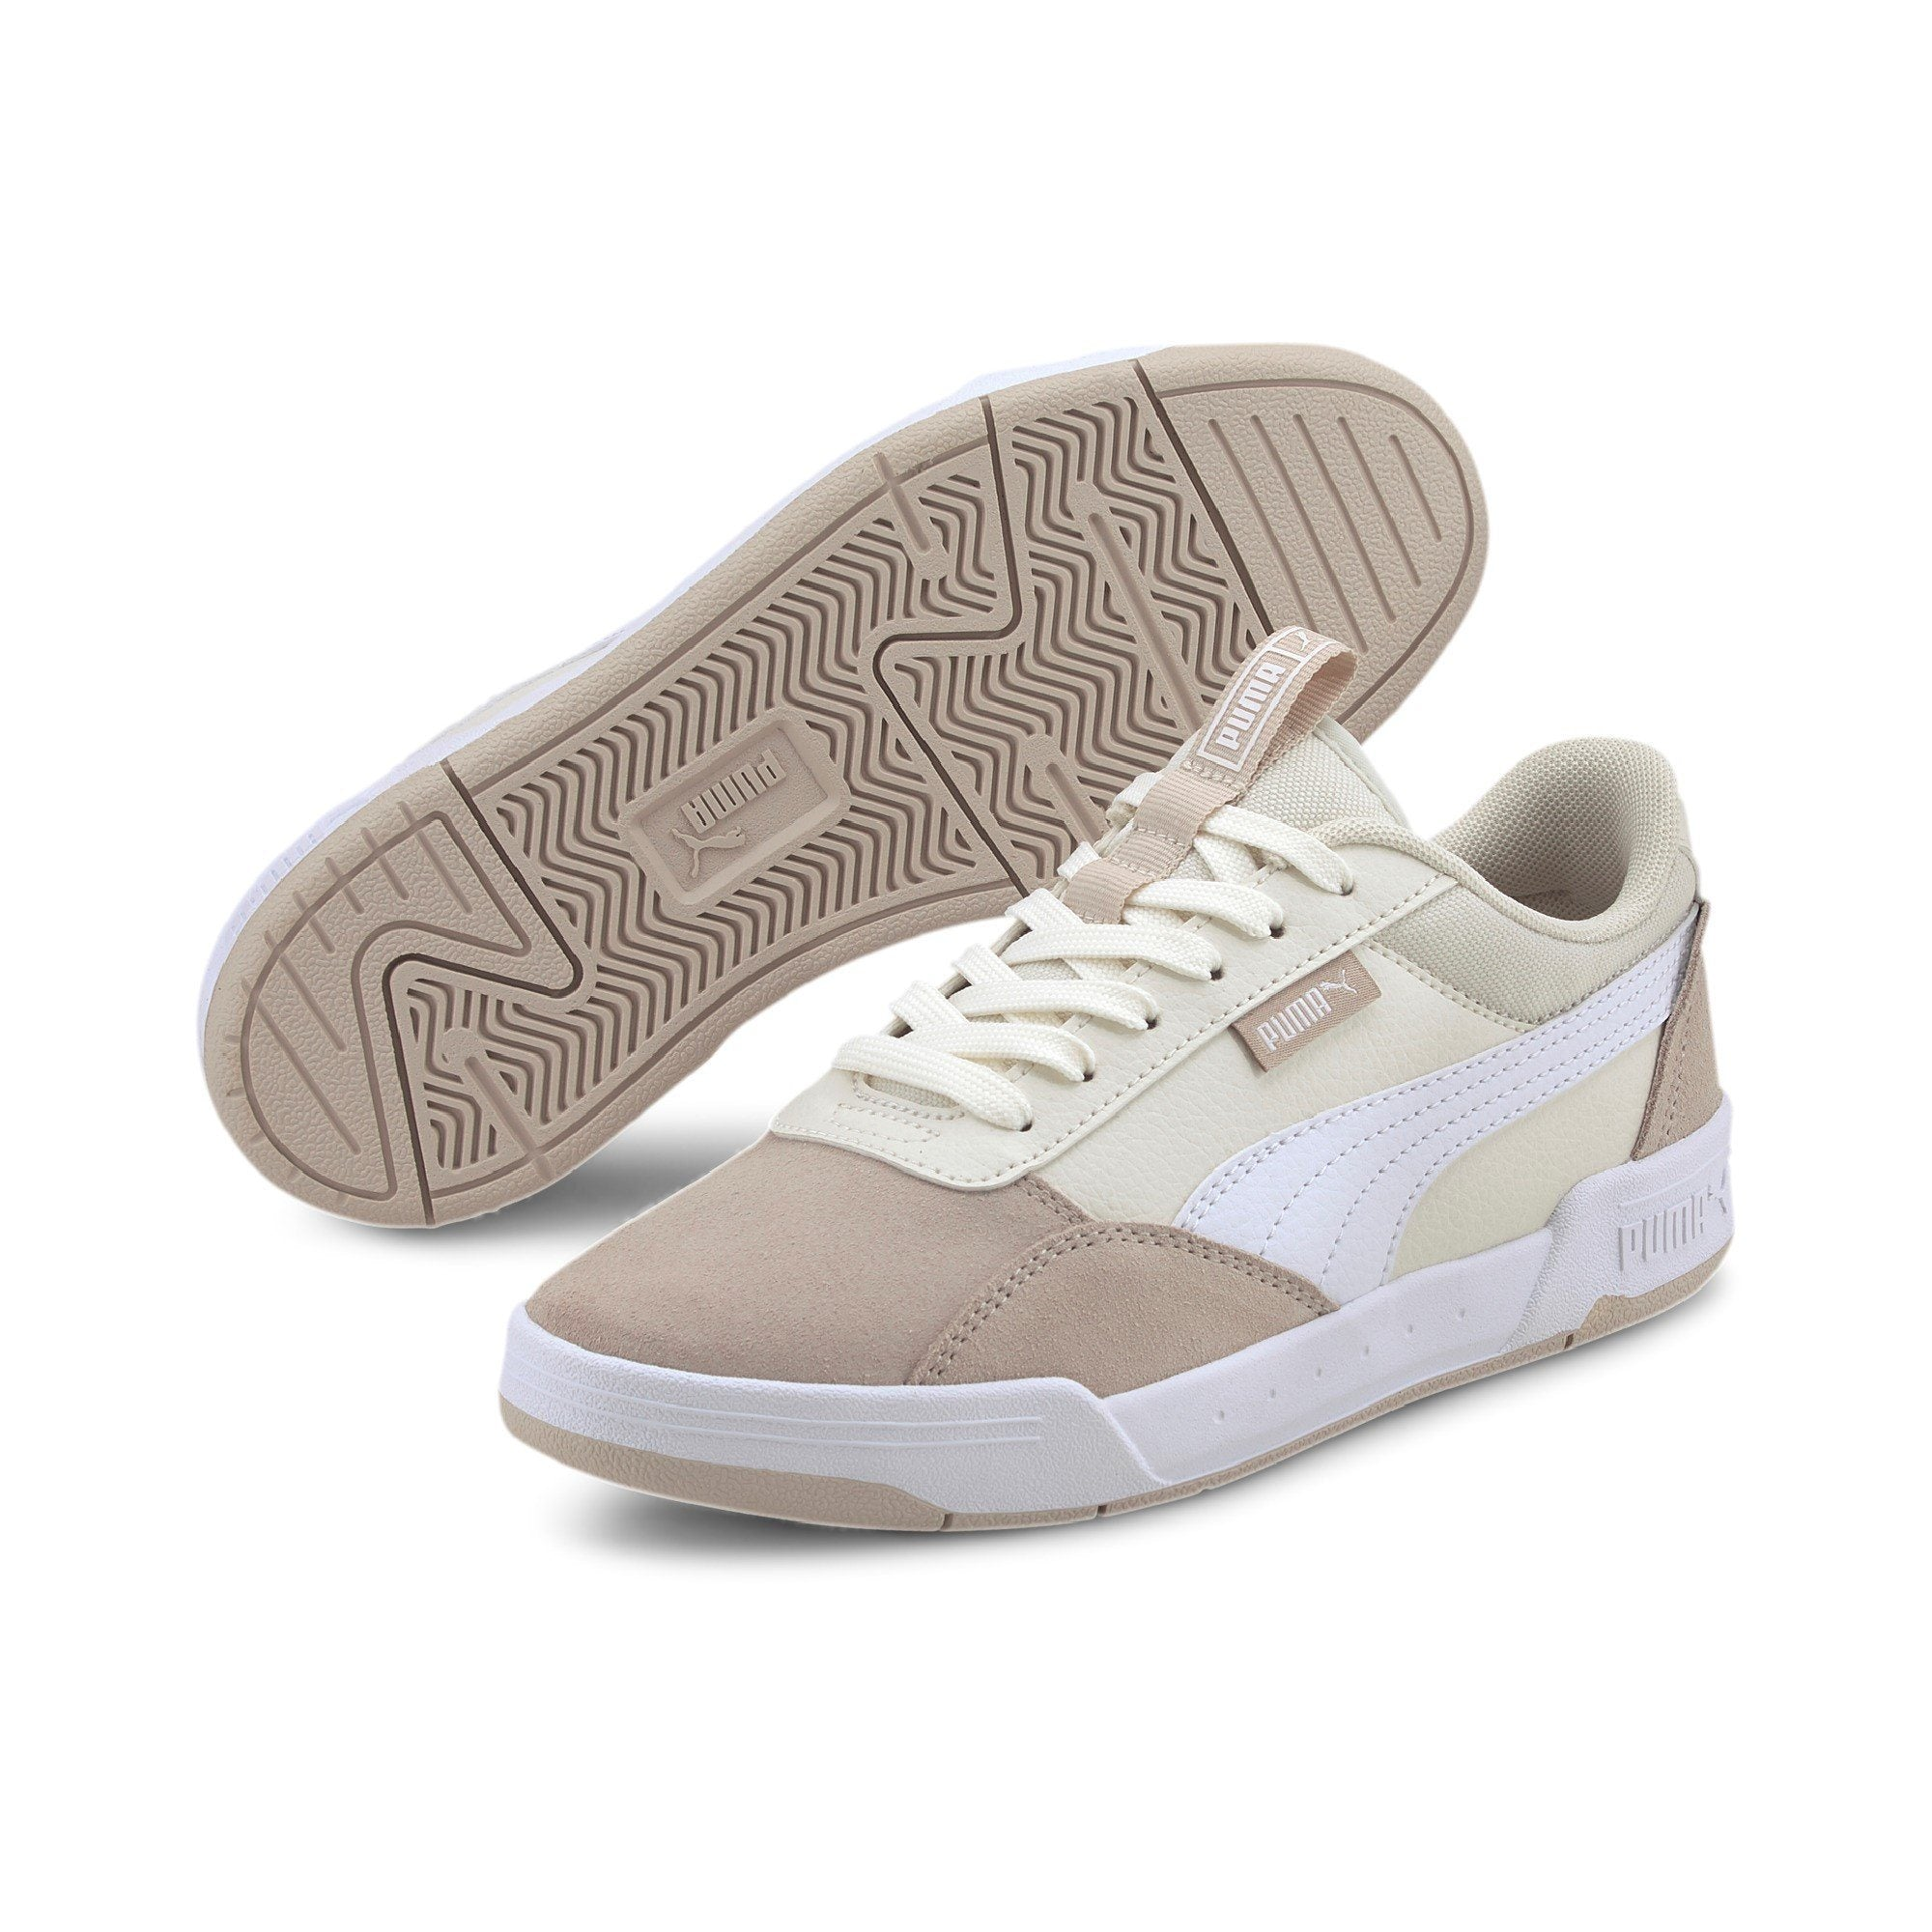 Puma Kids C-Skate Jr Vaporous - Grey/Puma White SP-Footwear-Kids Puma